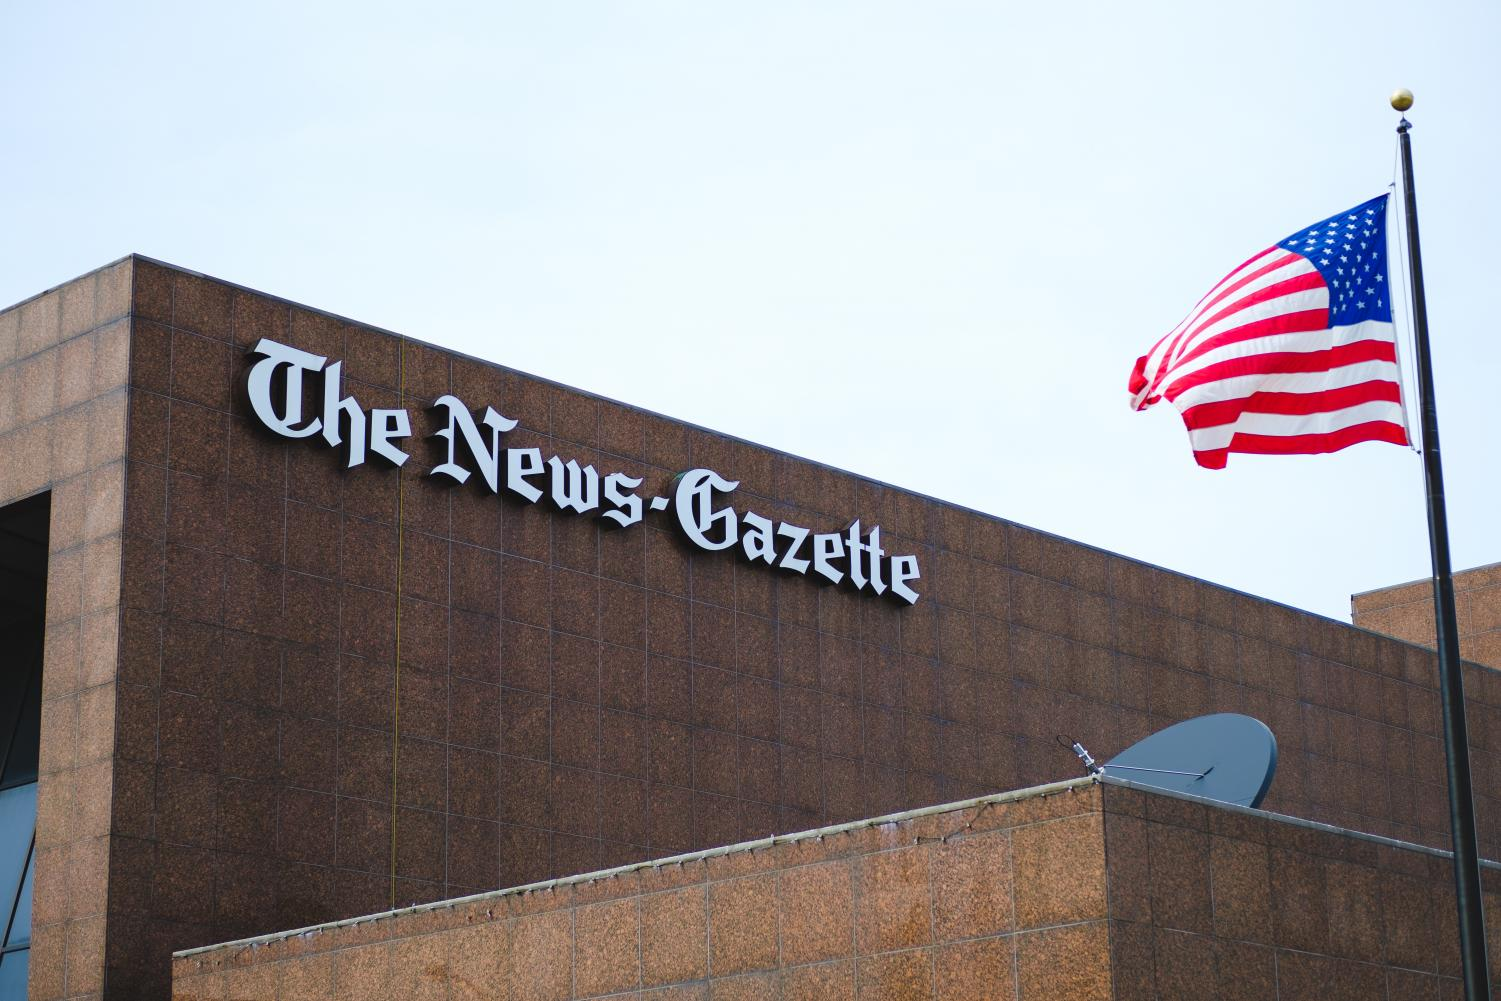 The News-Gazette building is pictured in downtown Champaign on Friday. On Sunday, the News-Gazette announced it will no longer be publishing a Monday paper.